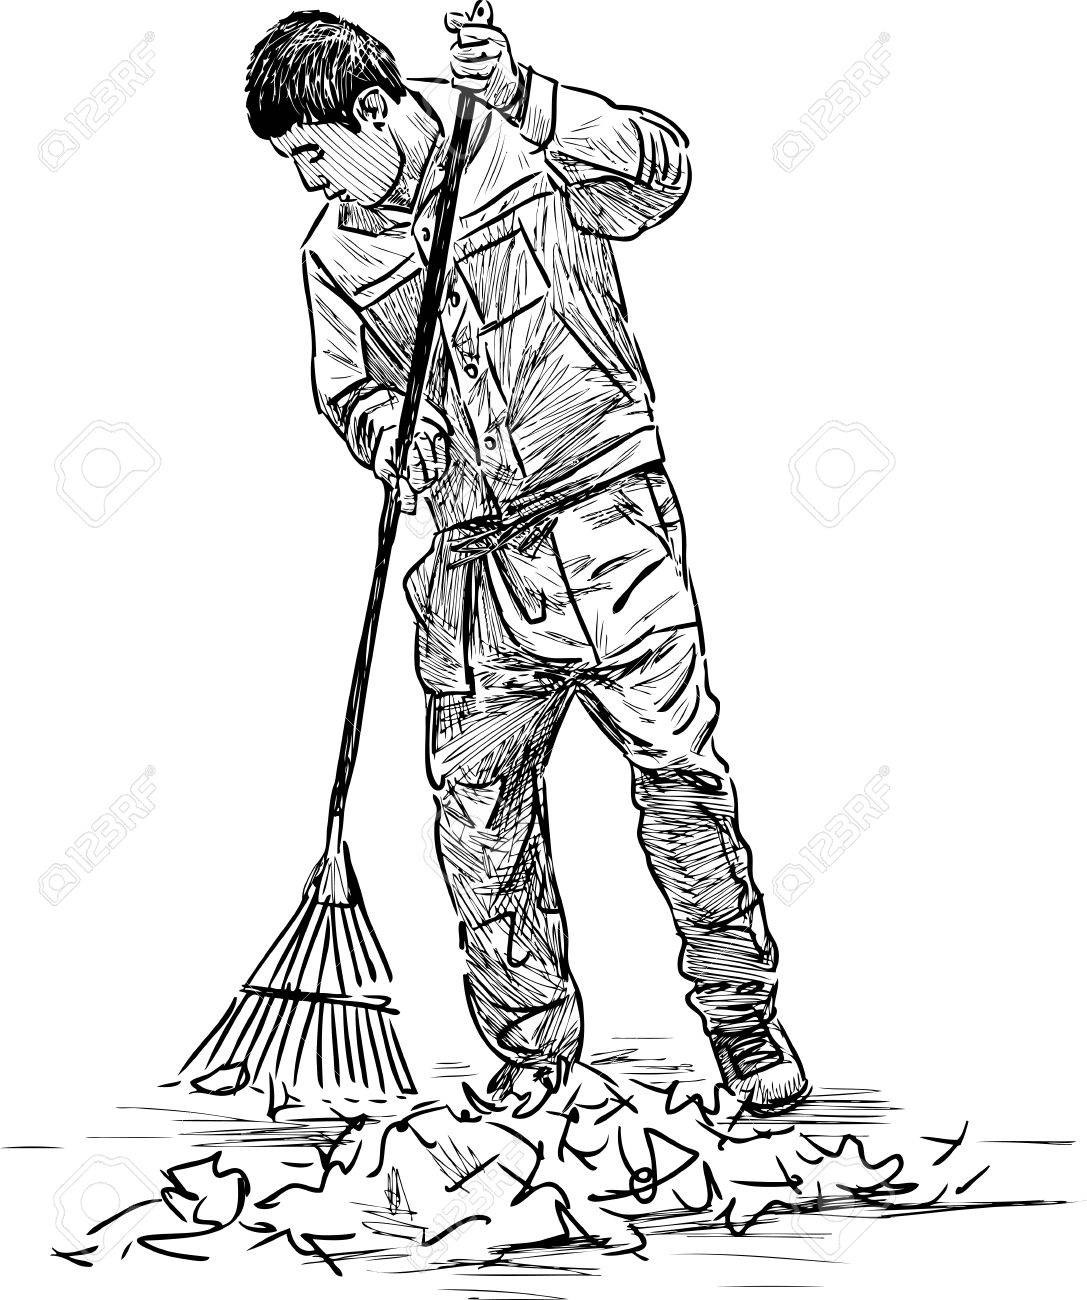 Street sweeper clipart black and white 3 » Clipart Station.